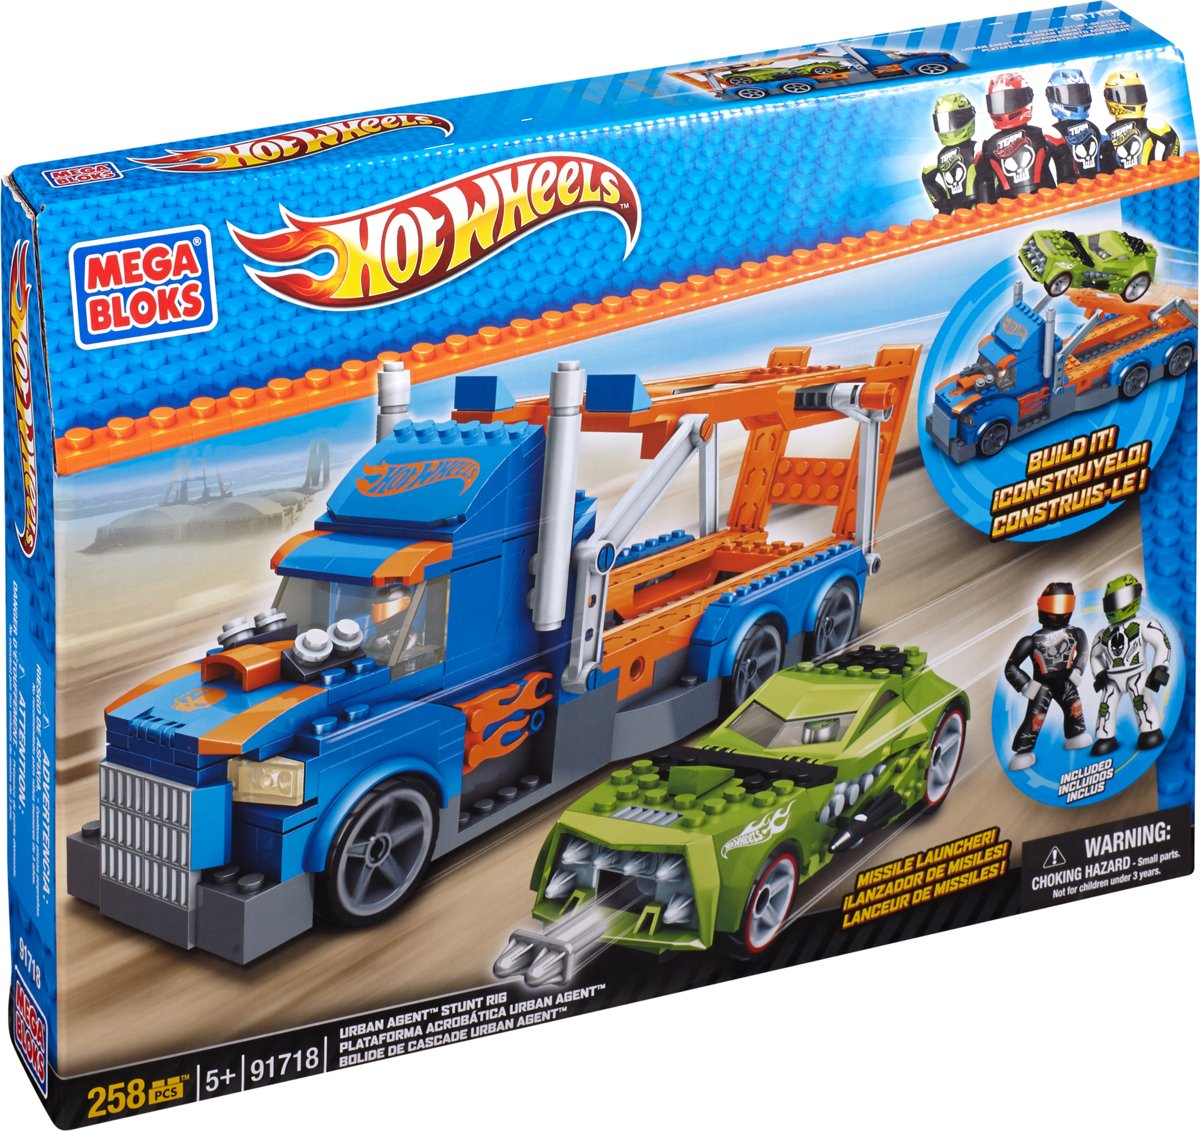 Mega Bloks Hot Wheels Urban Agent Escape Rig